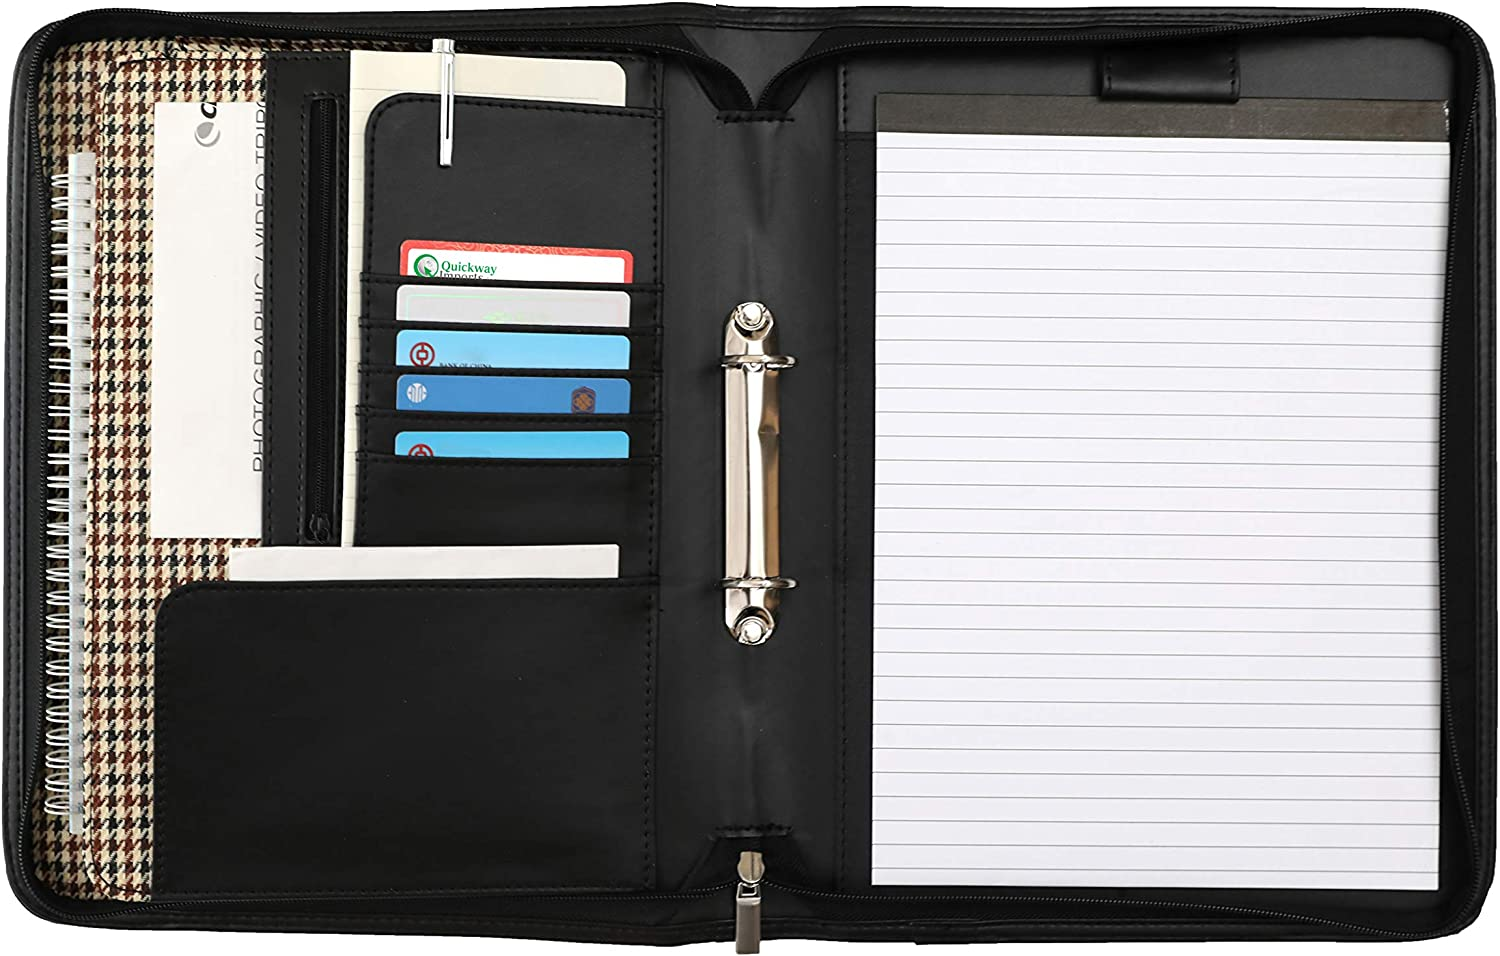 Deerlux QI003310 Max 49% OFF Fashion Leather Business Portfolio Includ Handles with